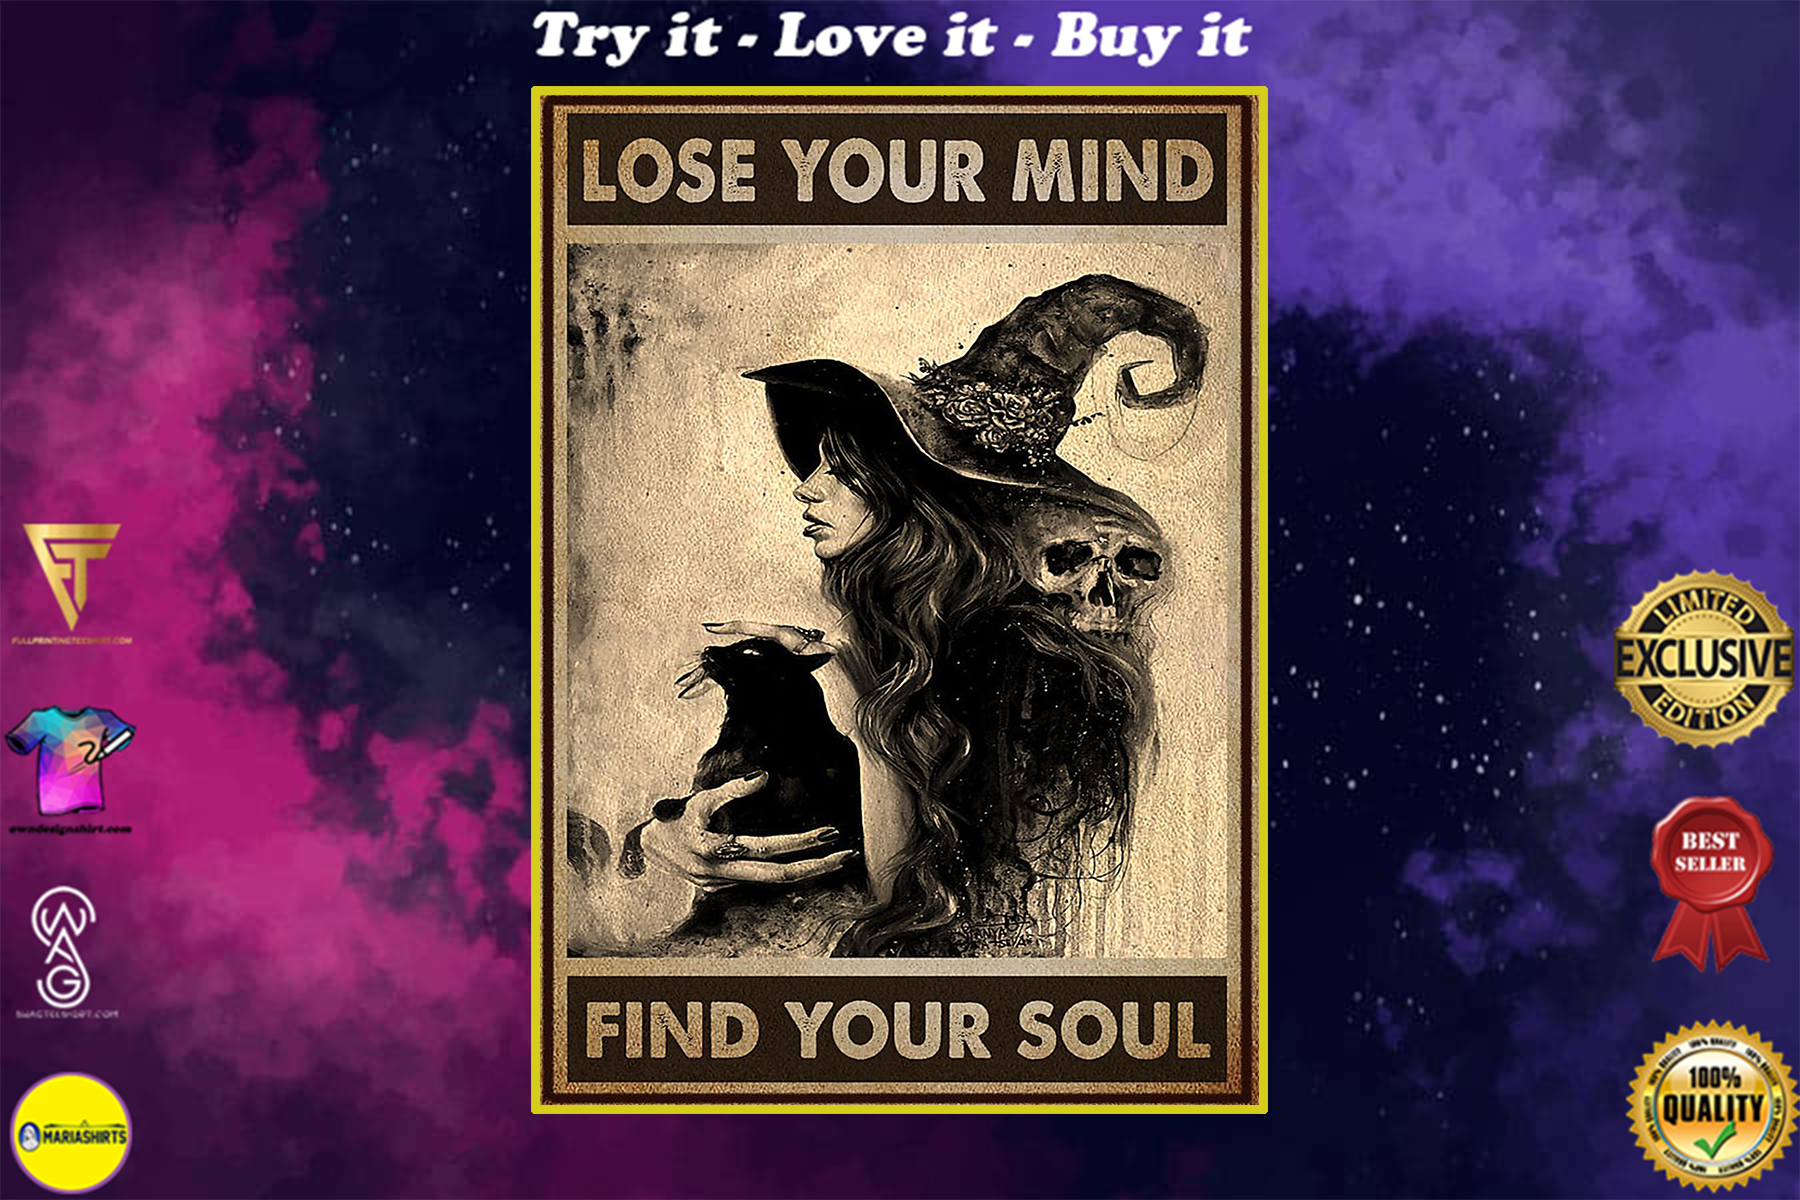 vintage black cat and witch lose your mind find your soul poster